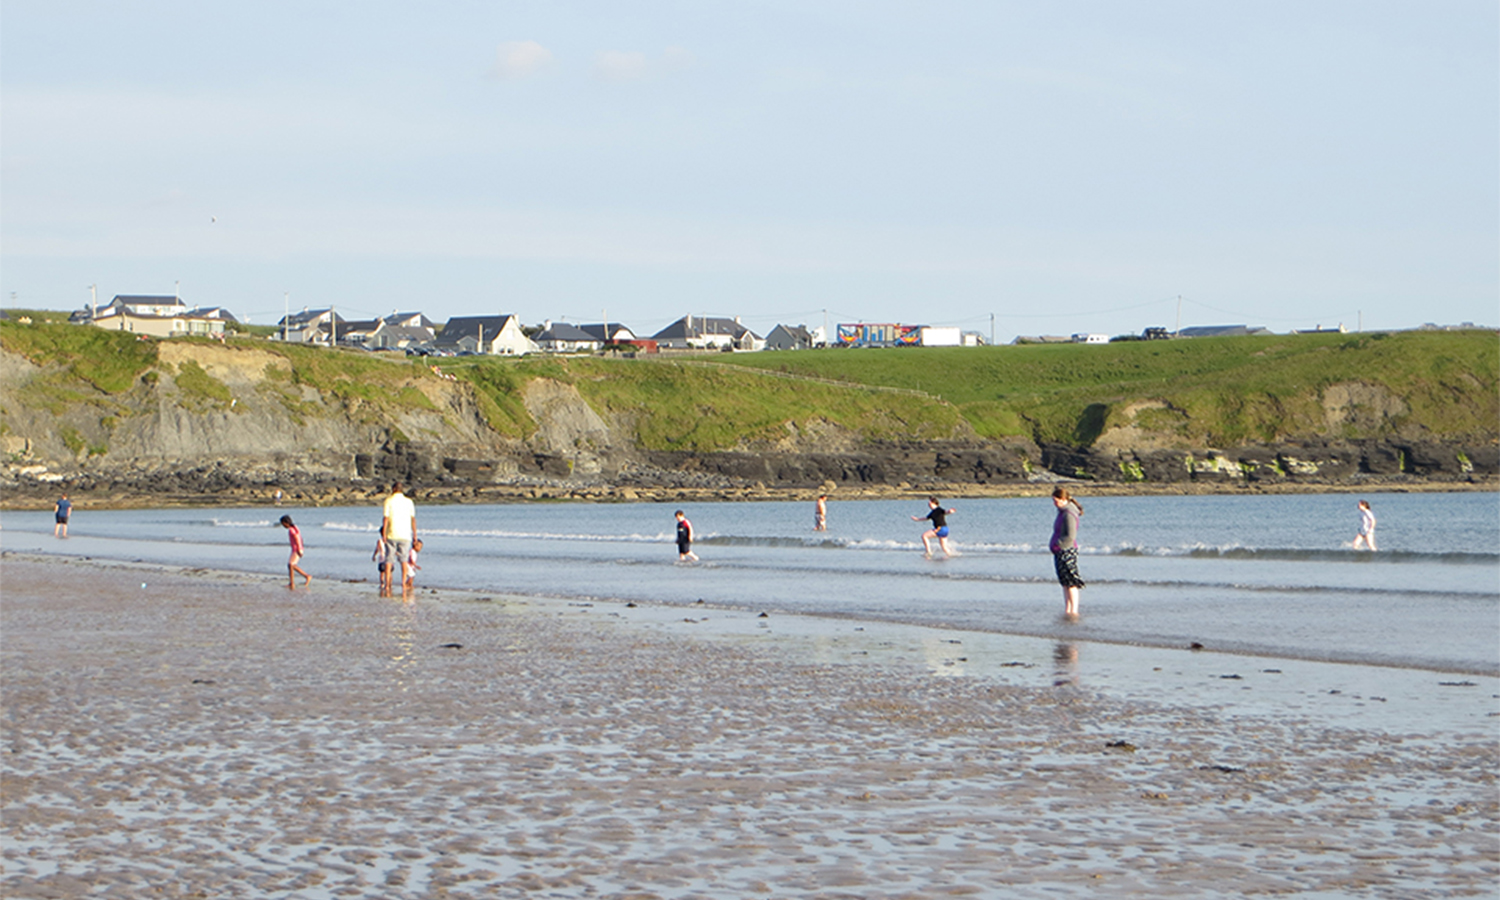 Lahinch beach with people paddling